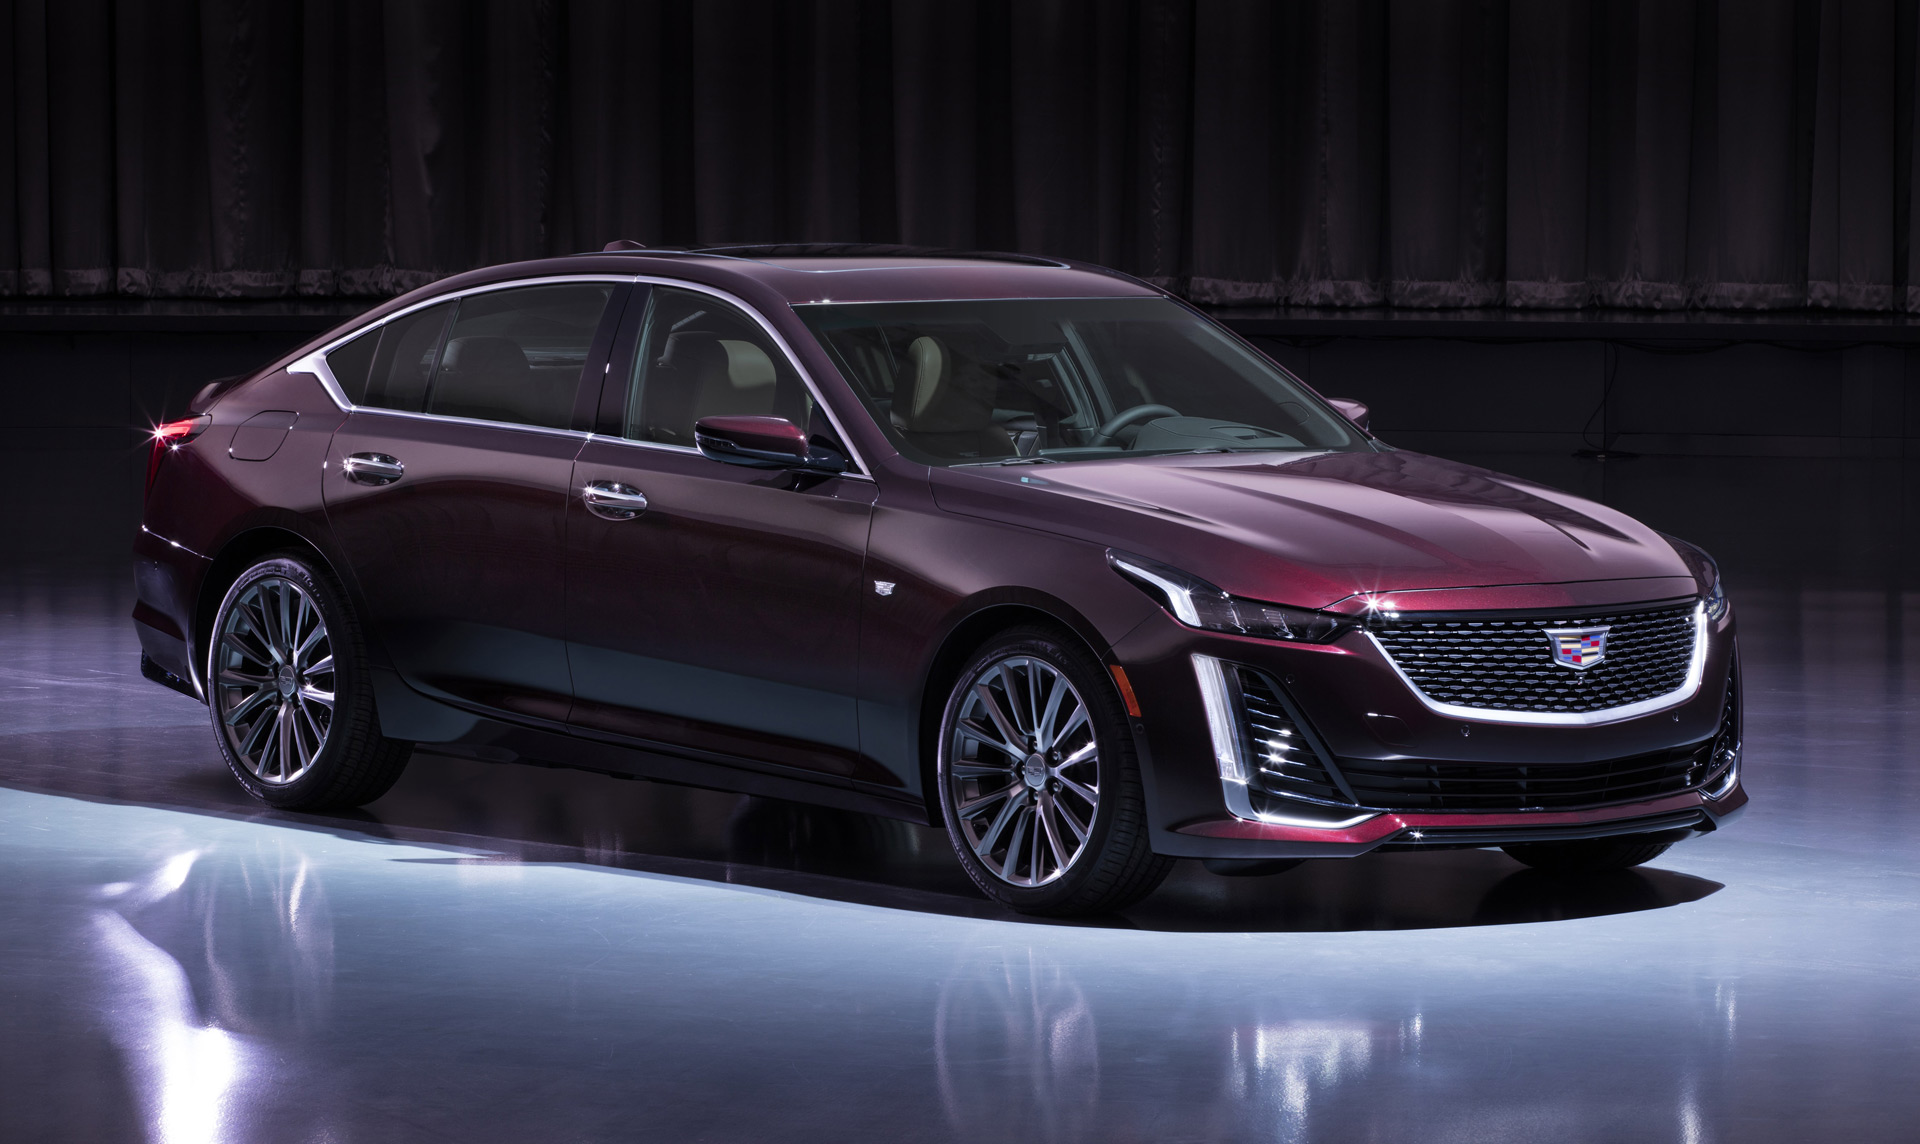 2020 Cadillac Ct5 Costs 37 890 To Start More Than 10 000 Less